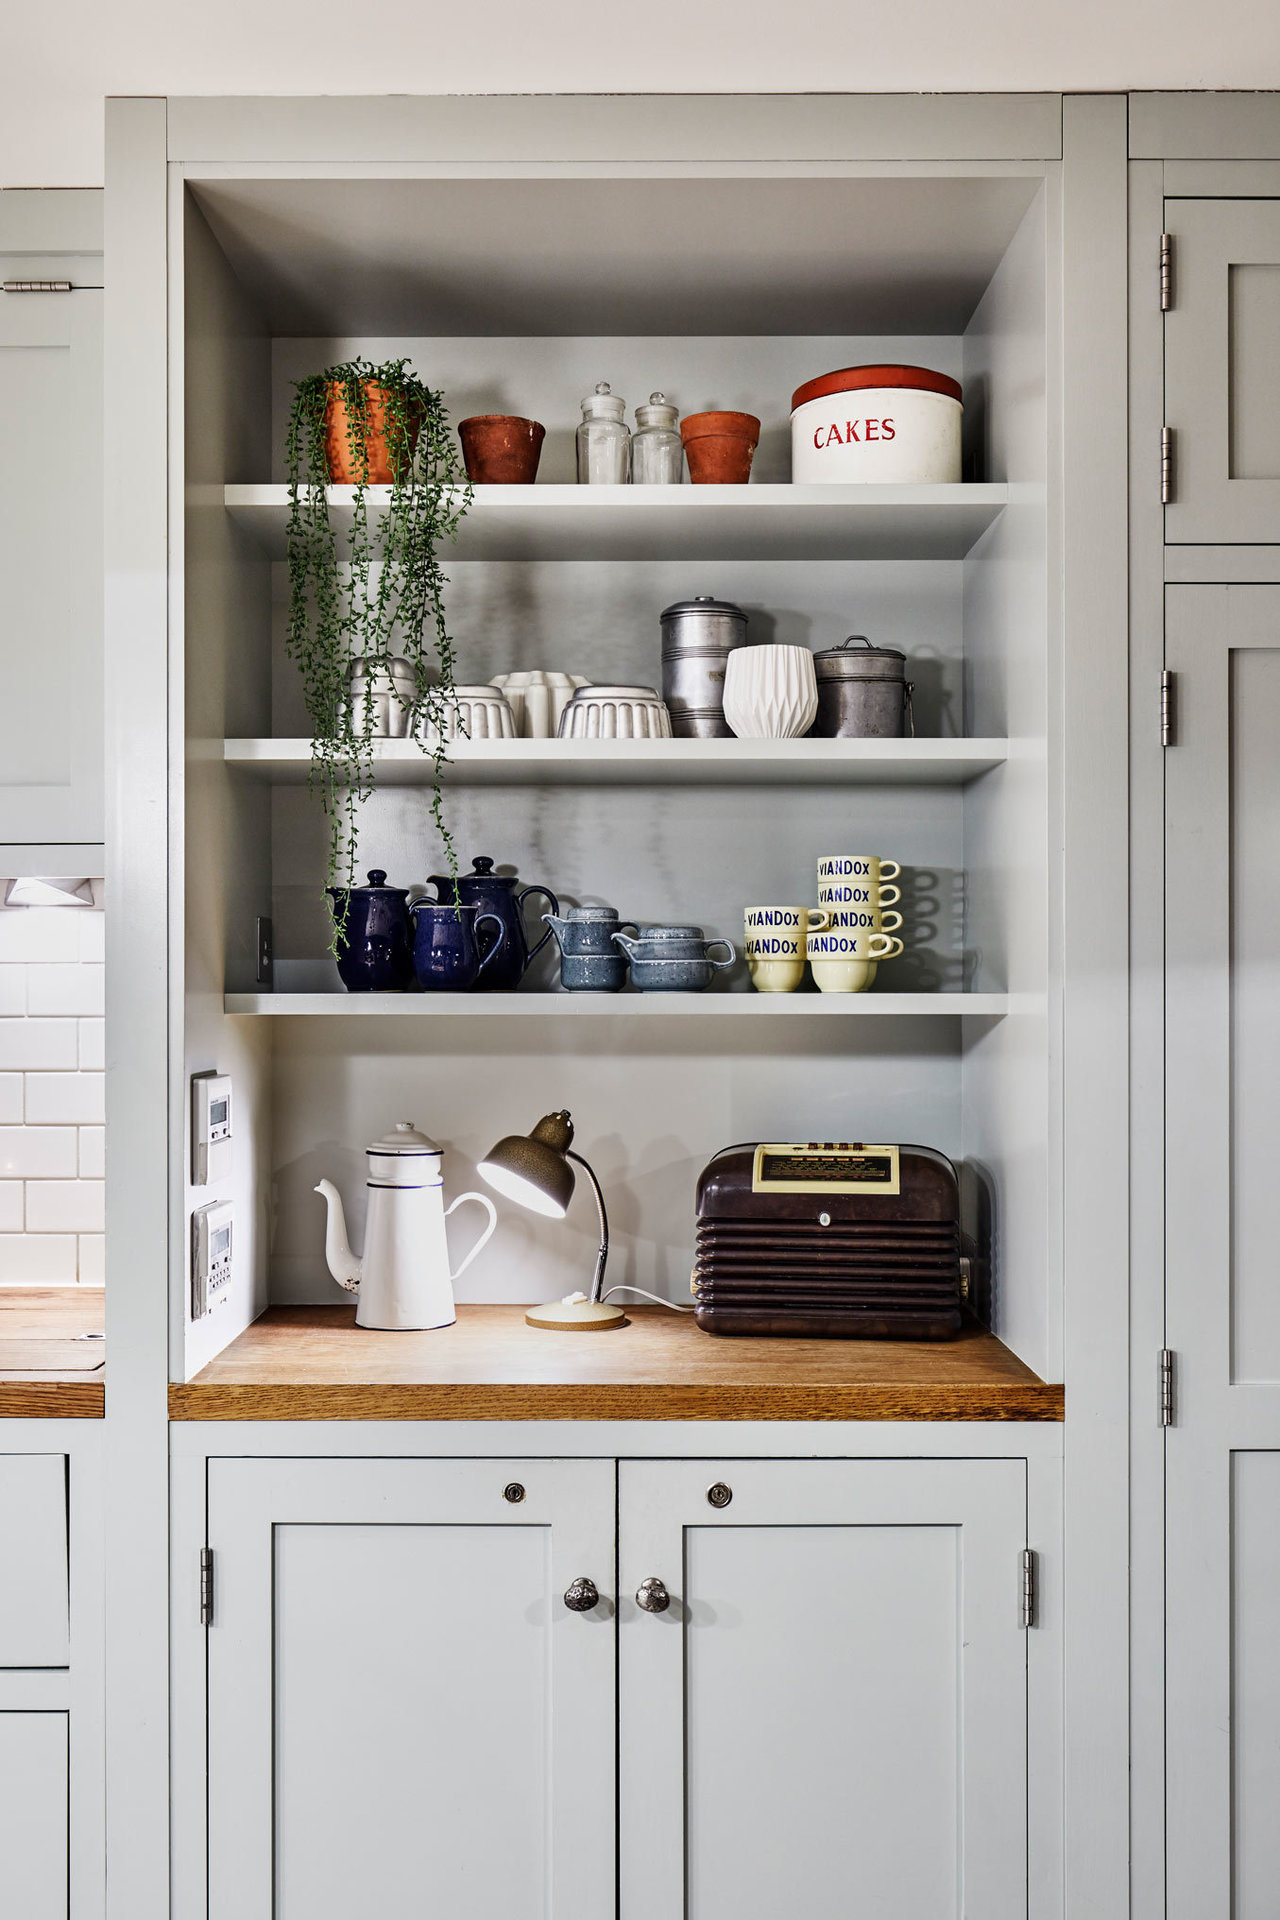 A cabinet with crockery